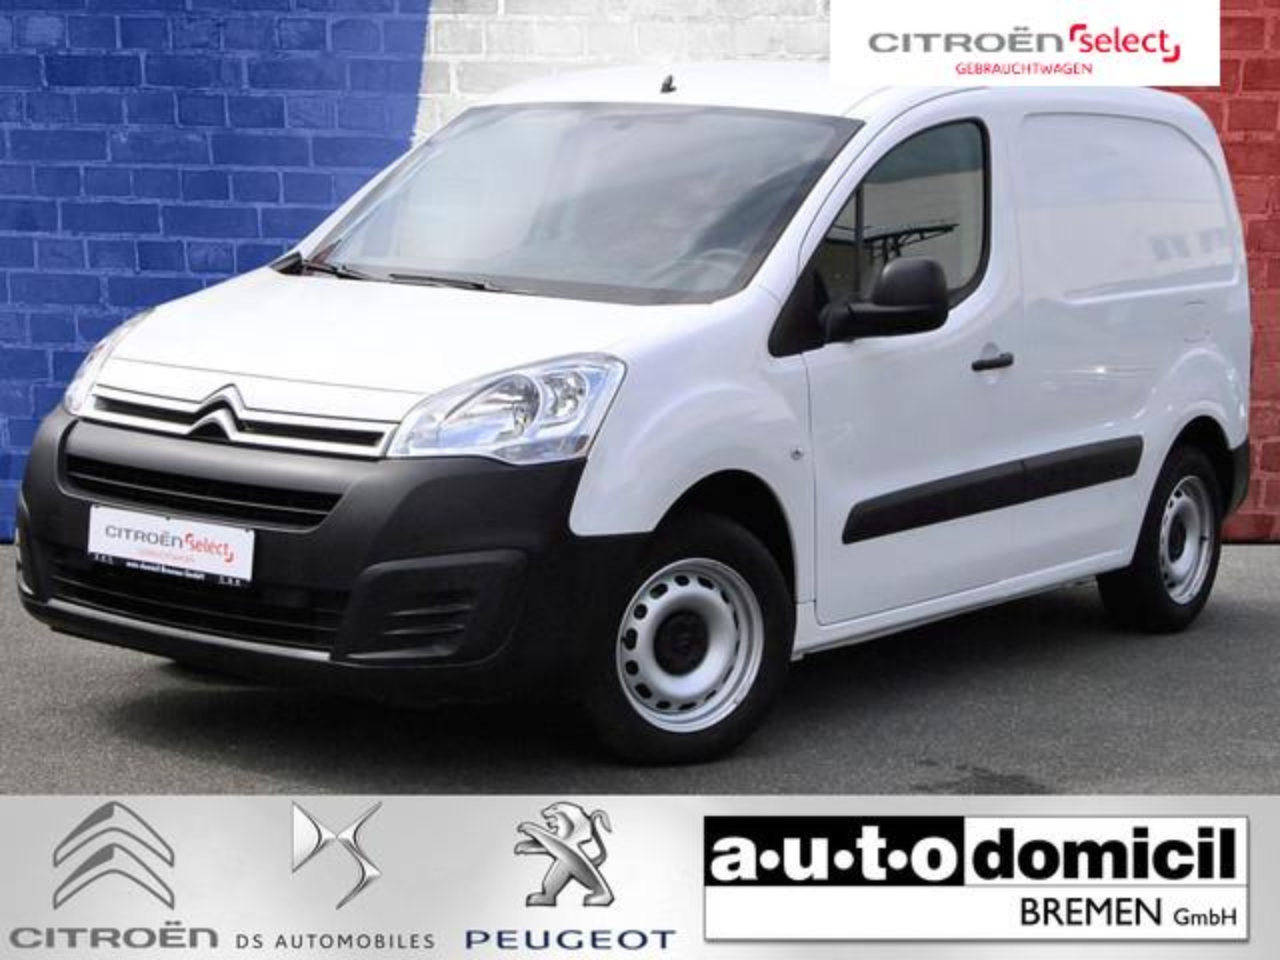 Citroën Berlingo KW L1 BlueHDI 75 Klima+Radio+Bluetooth